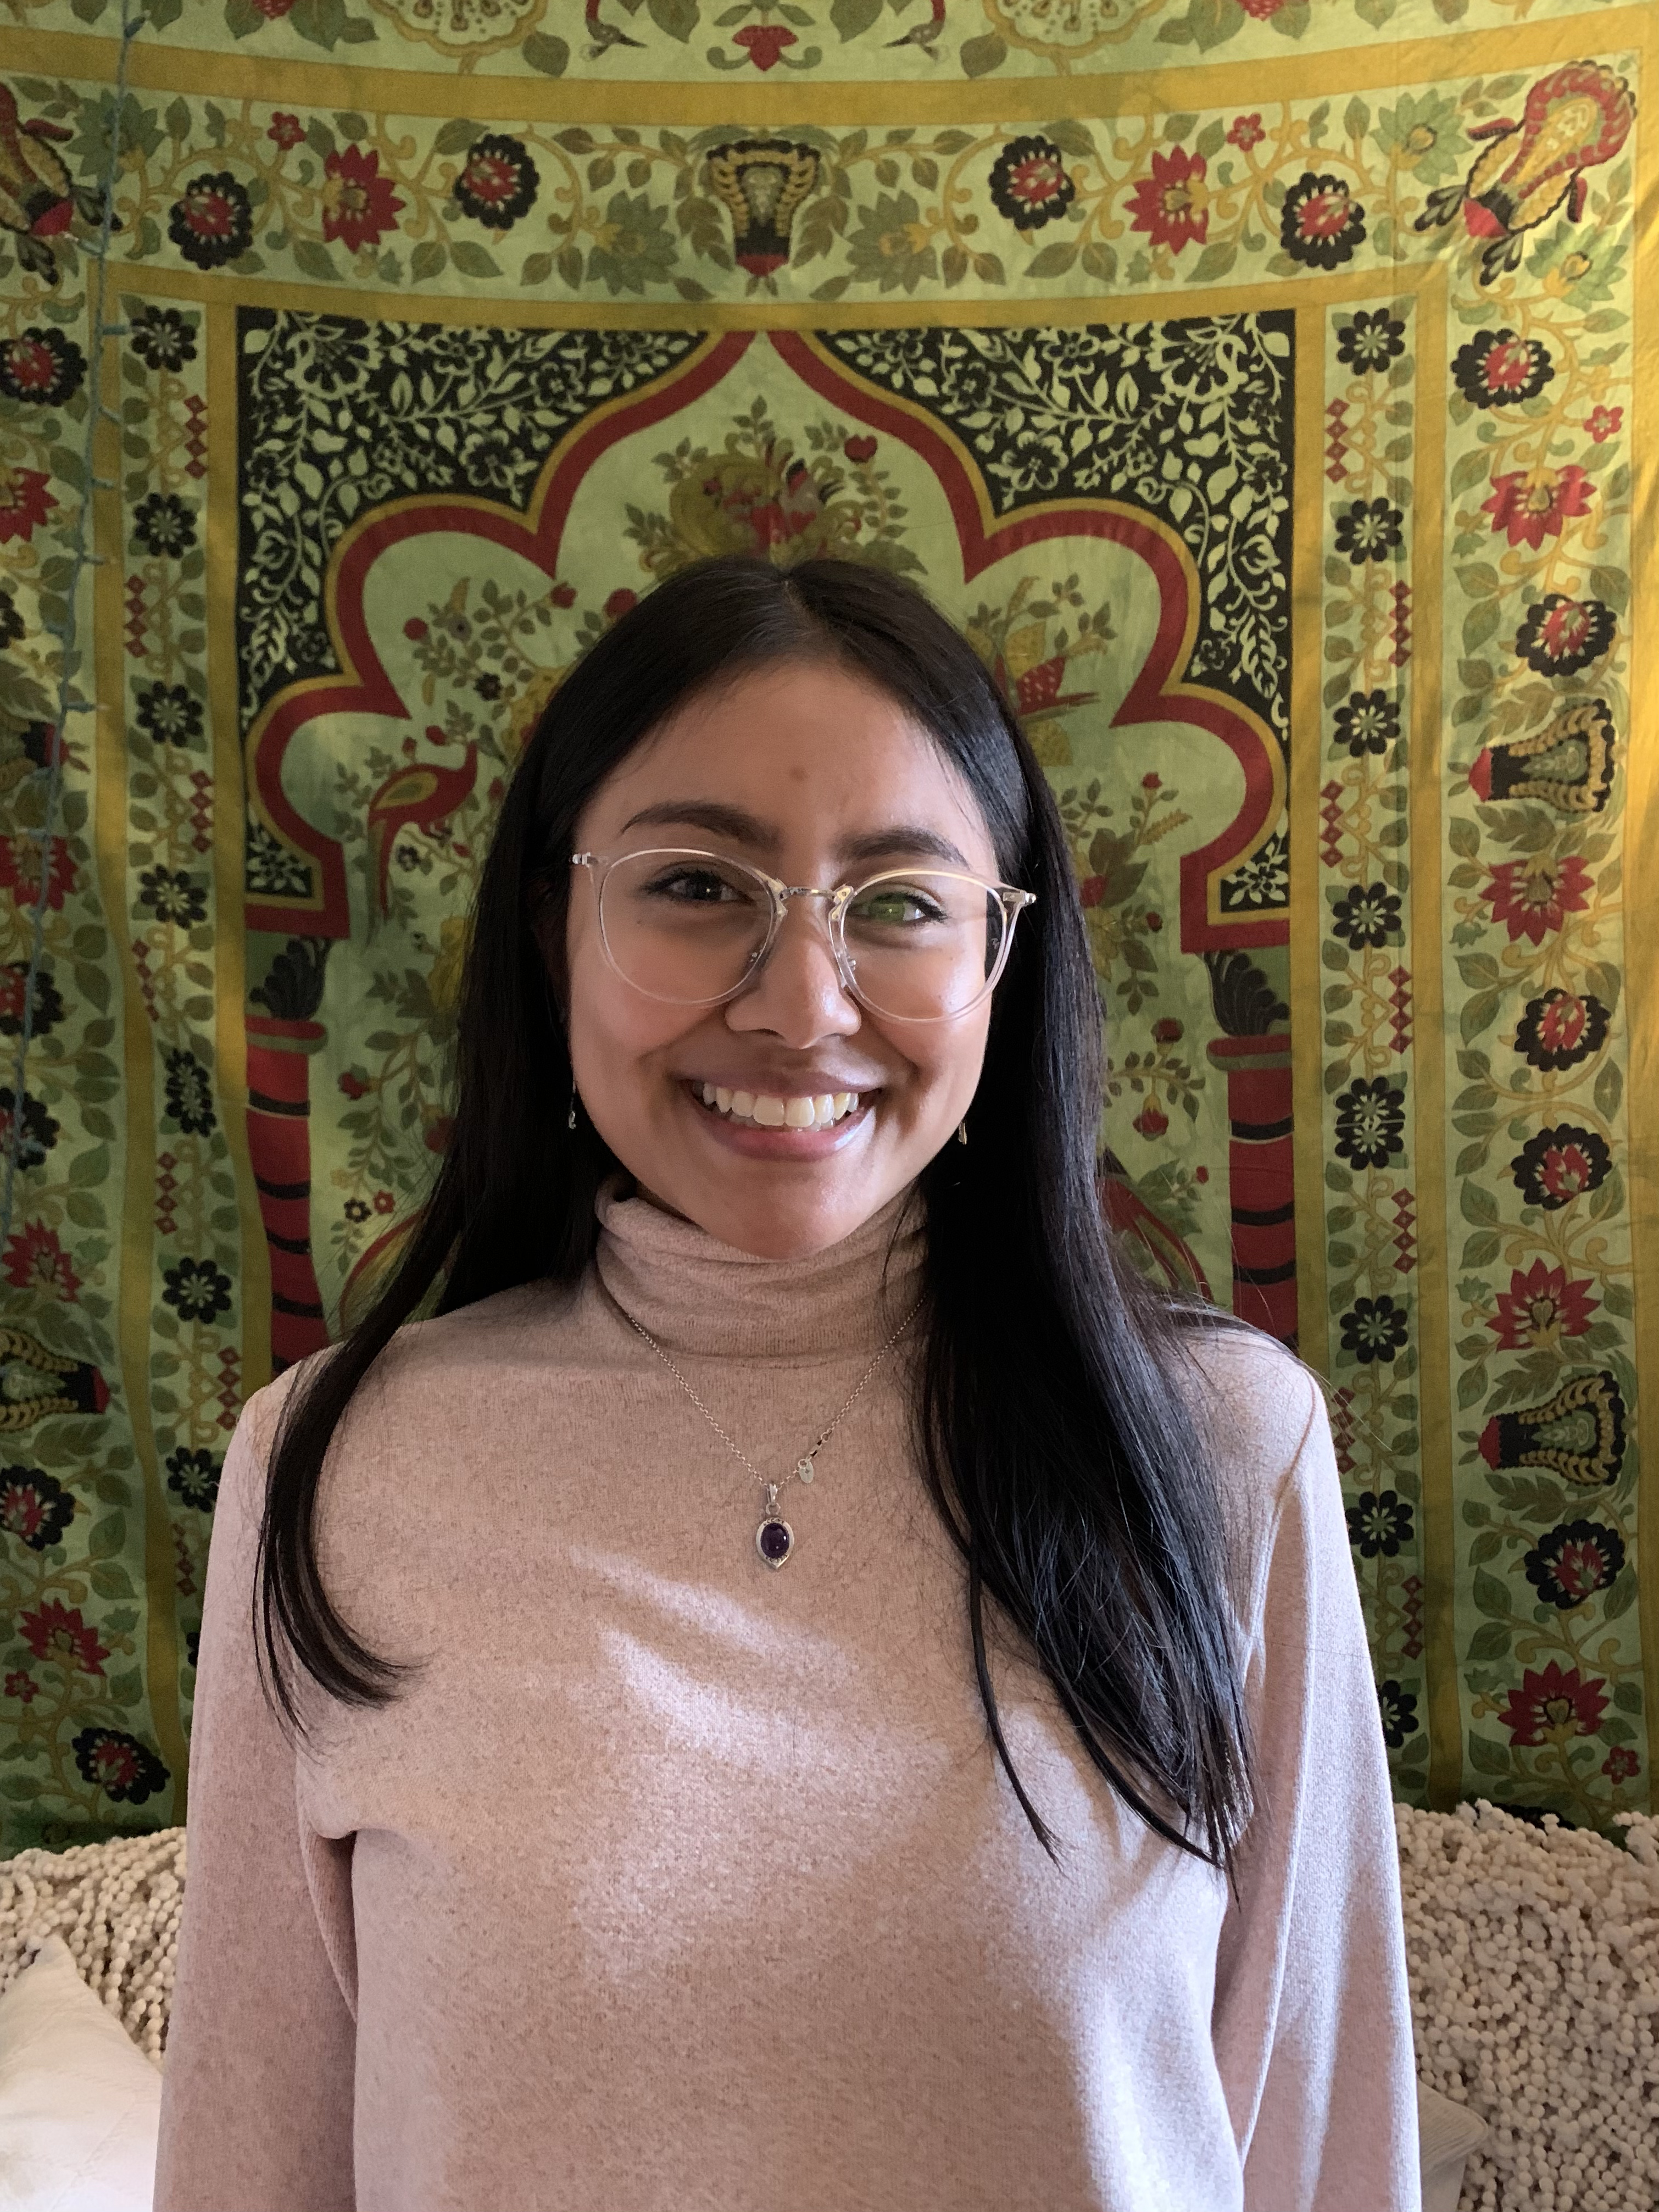 Guest Blog: From the Desk of CFC Health Intern Ashley An